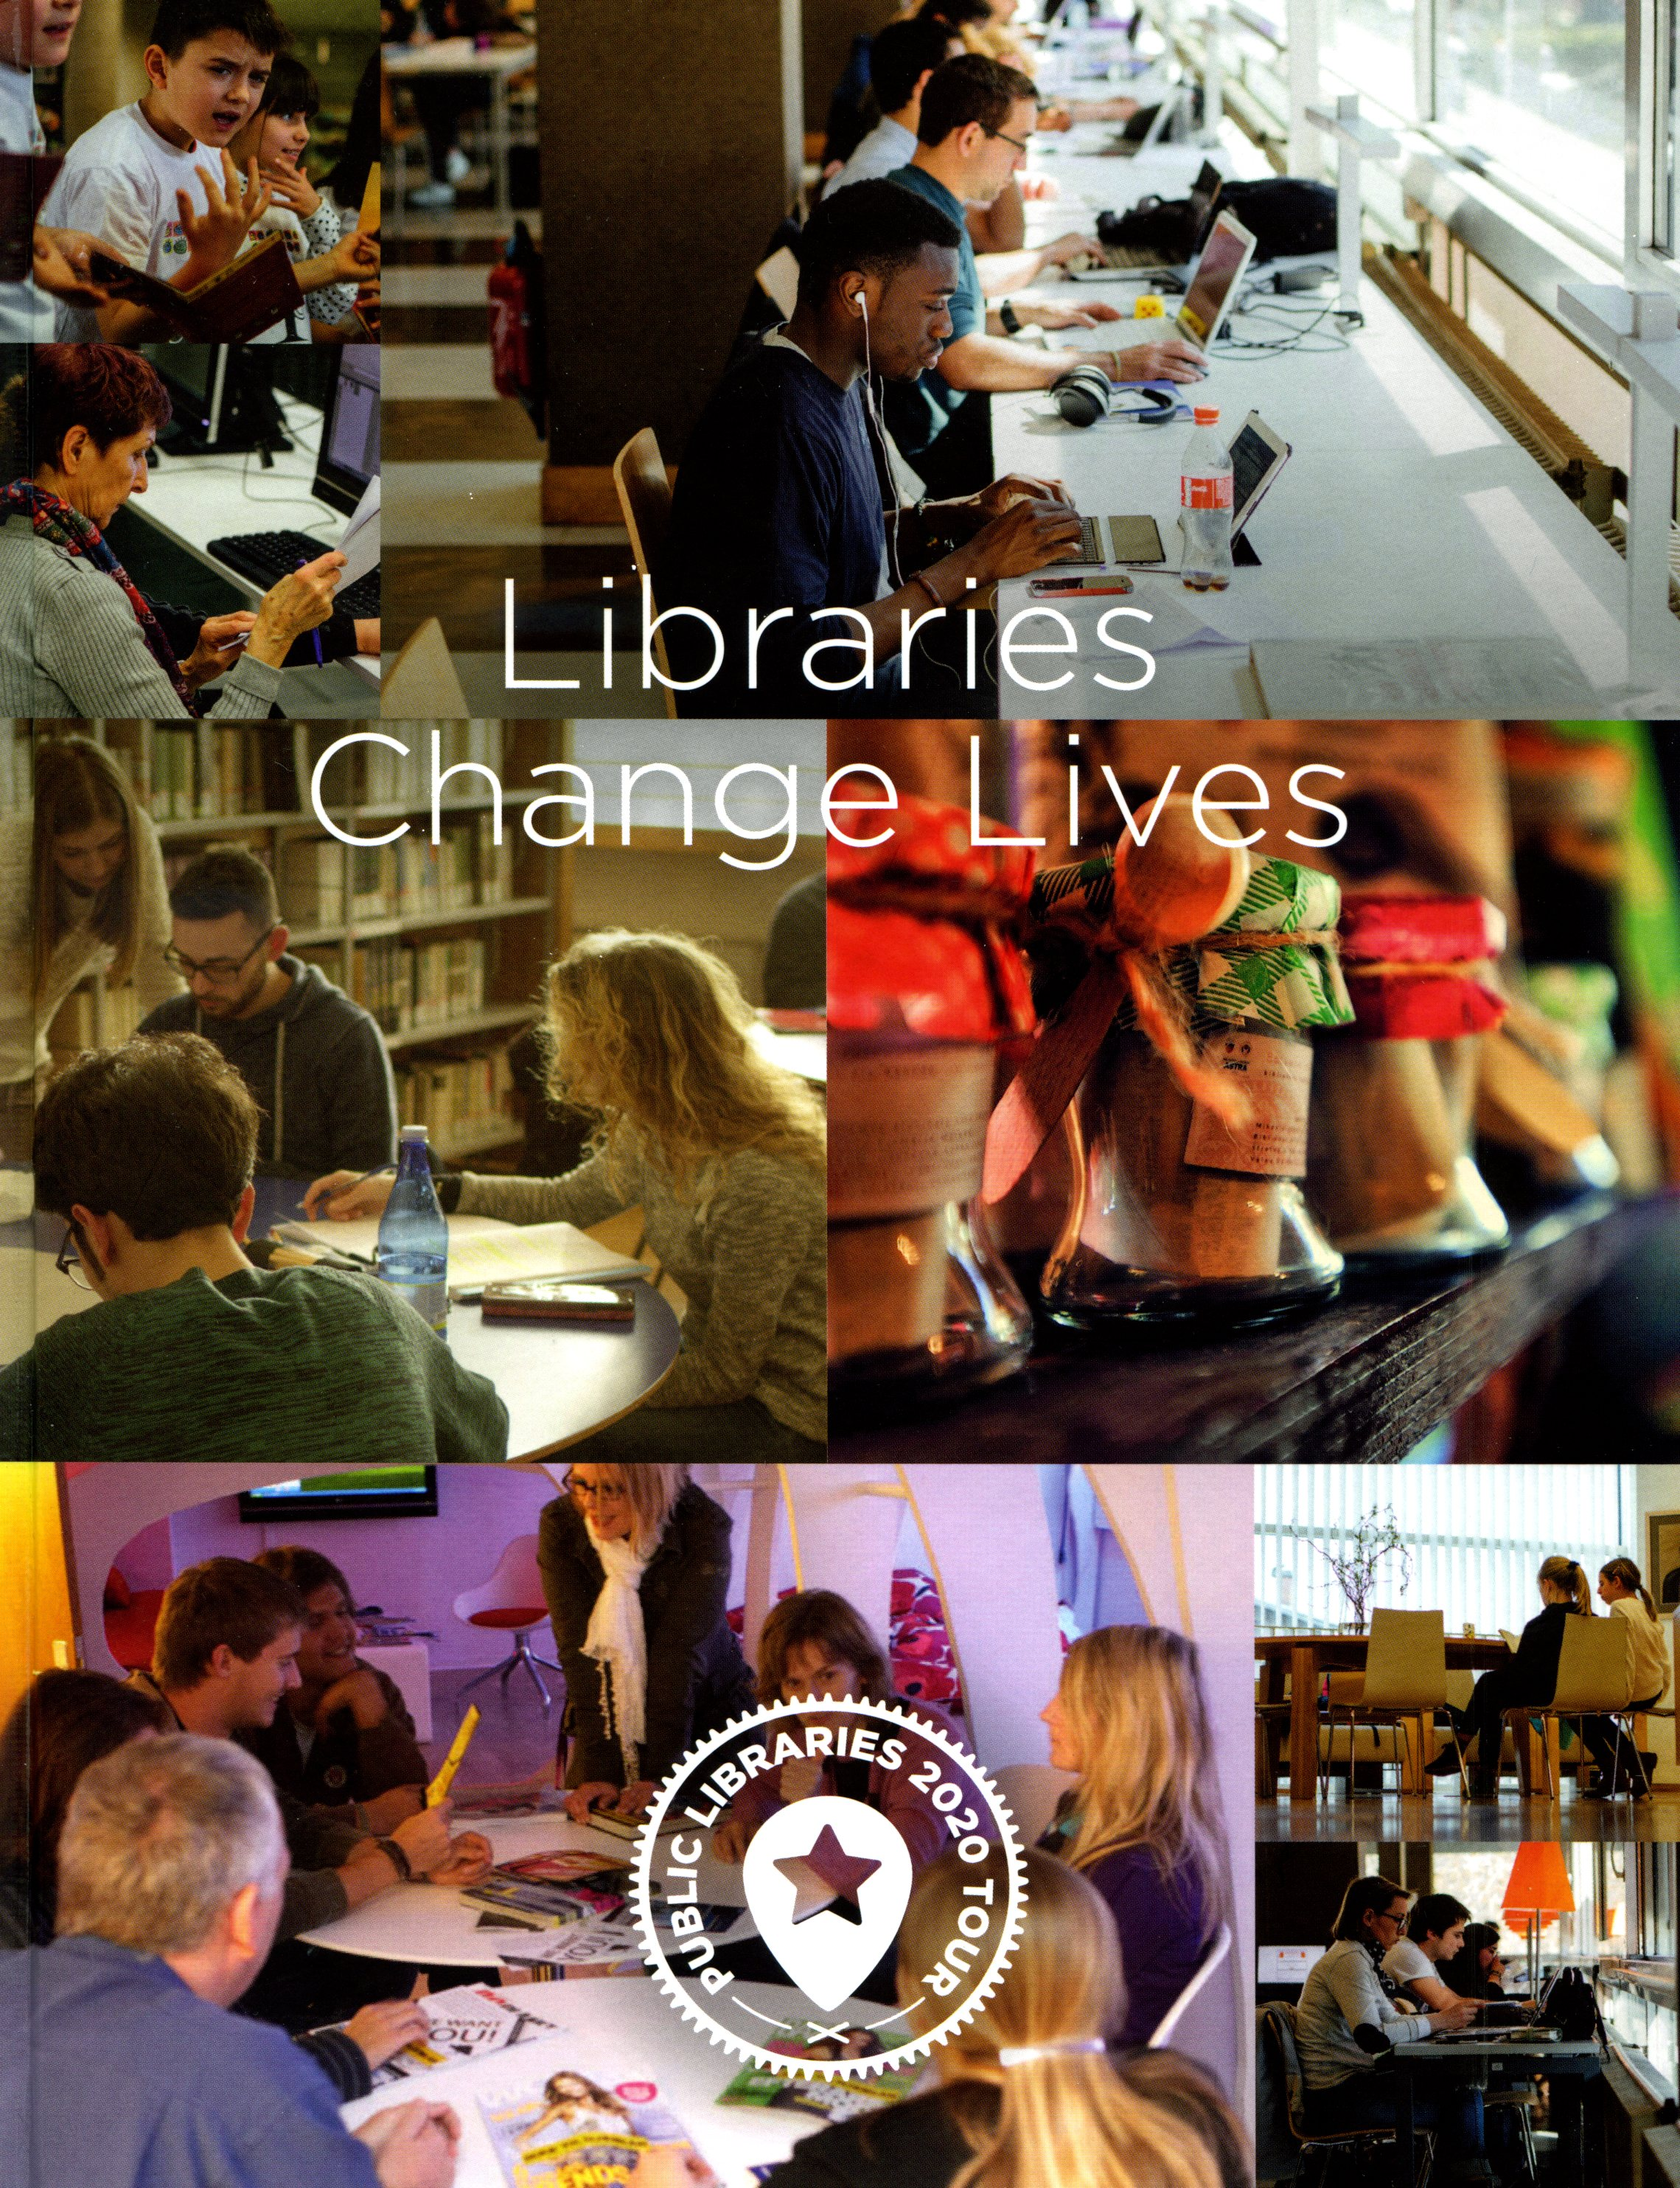 Libraries change lives